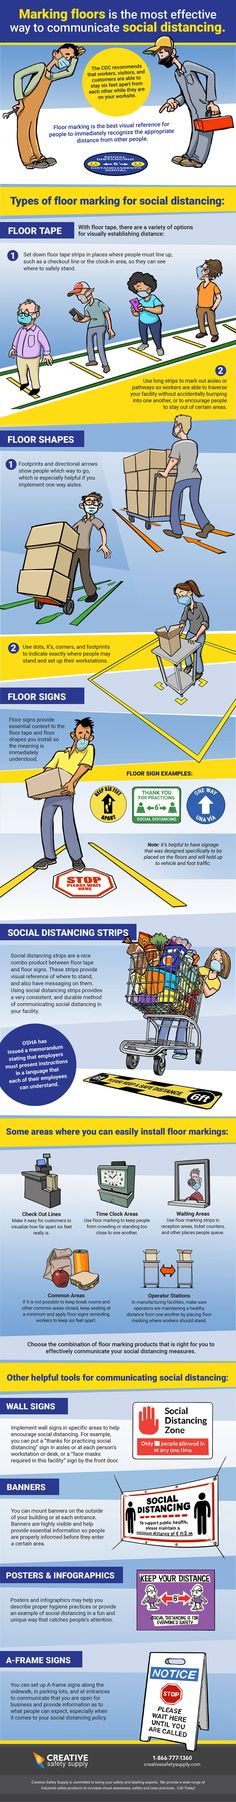 Is your workplace set up to help prevent the spread of illness? Keeping a distance of six feet is the best way to slow the spread of COVID-19, according to the CDC.  This infographic from Creative Safety Supply Floor explores best practices for visually establishing a safe distance + why floor marking is the most effective tool for enforcing social distancing.